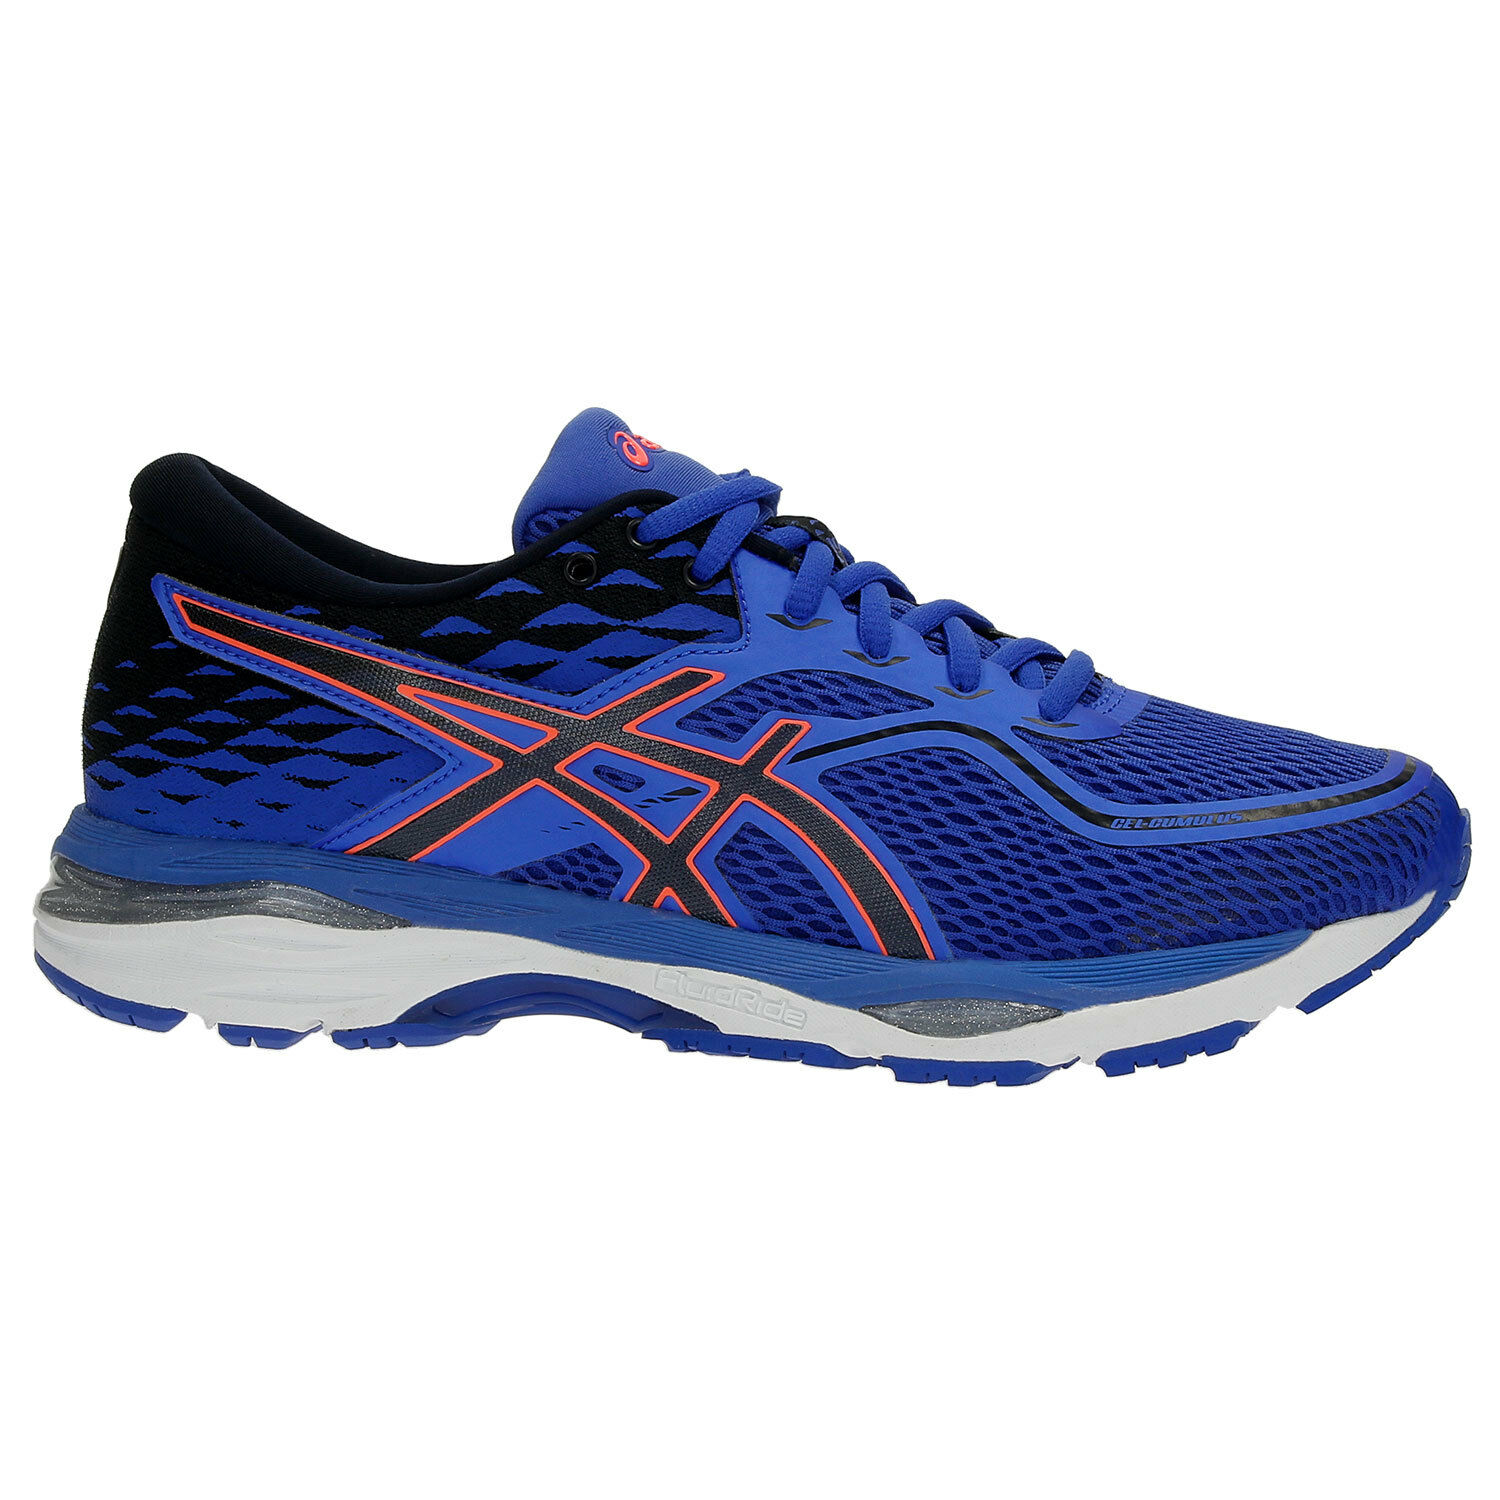 Genuine Asics Gel Cumulus 19 Donna Running Shoes (D) (4890)   BUY NOW!